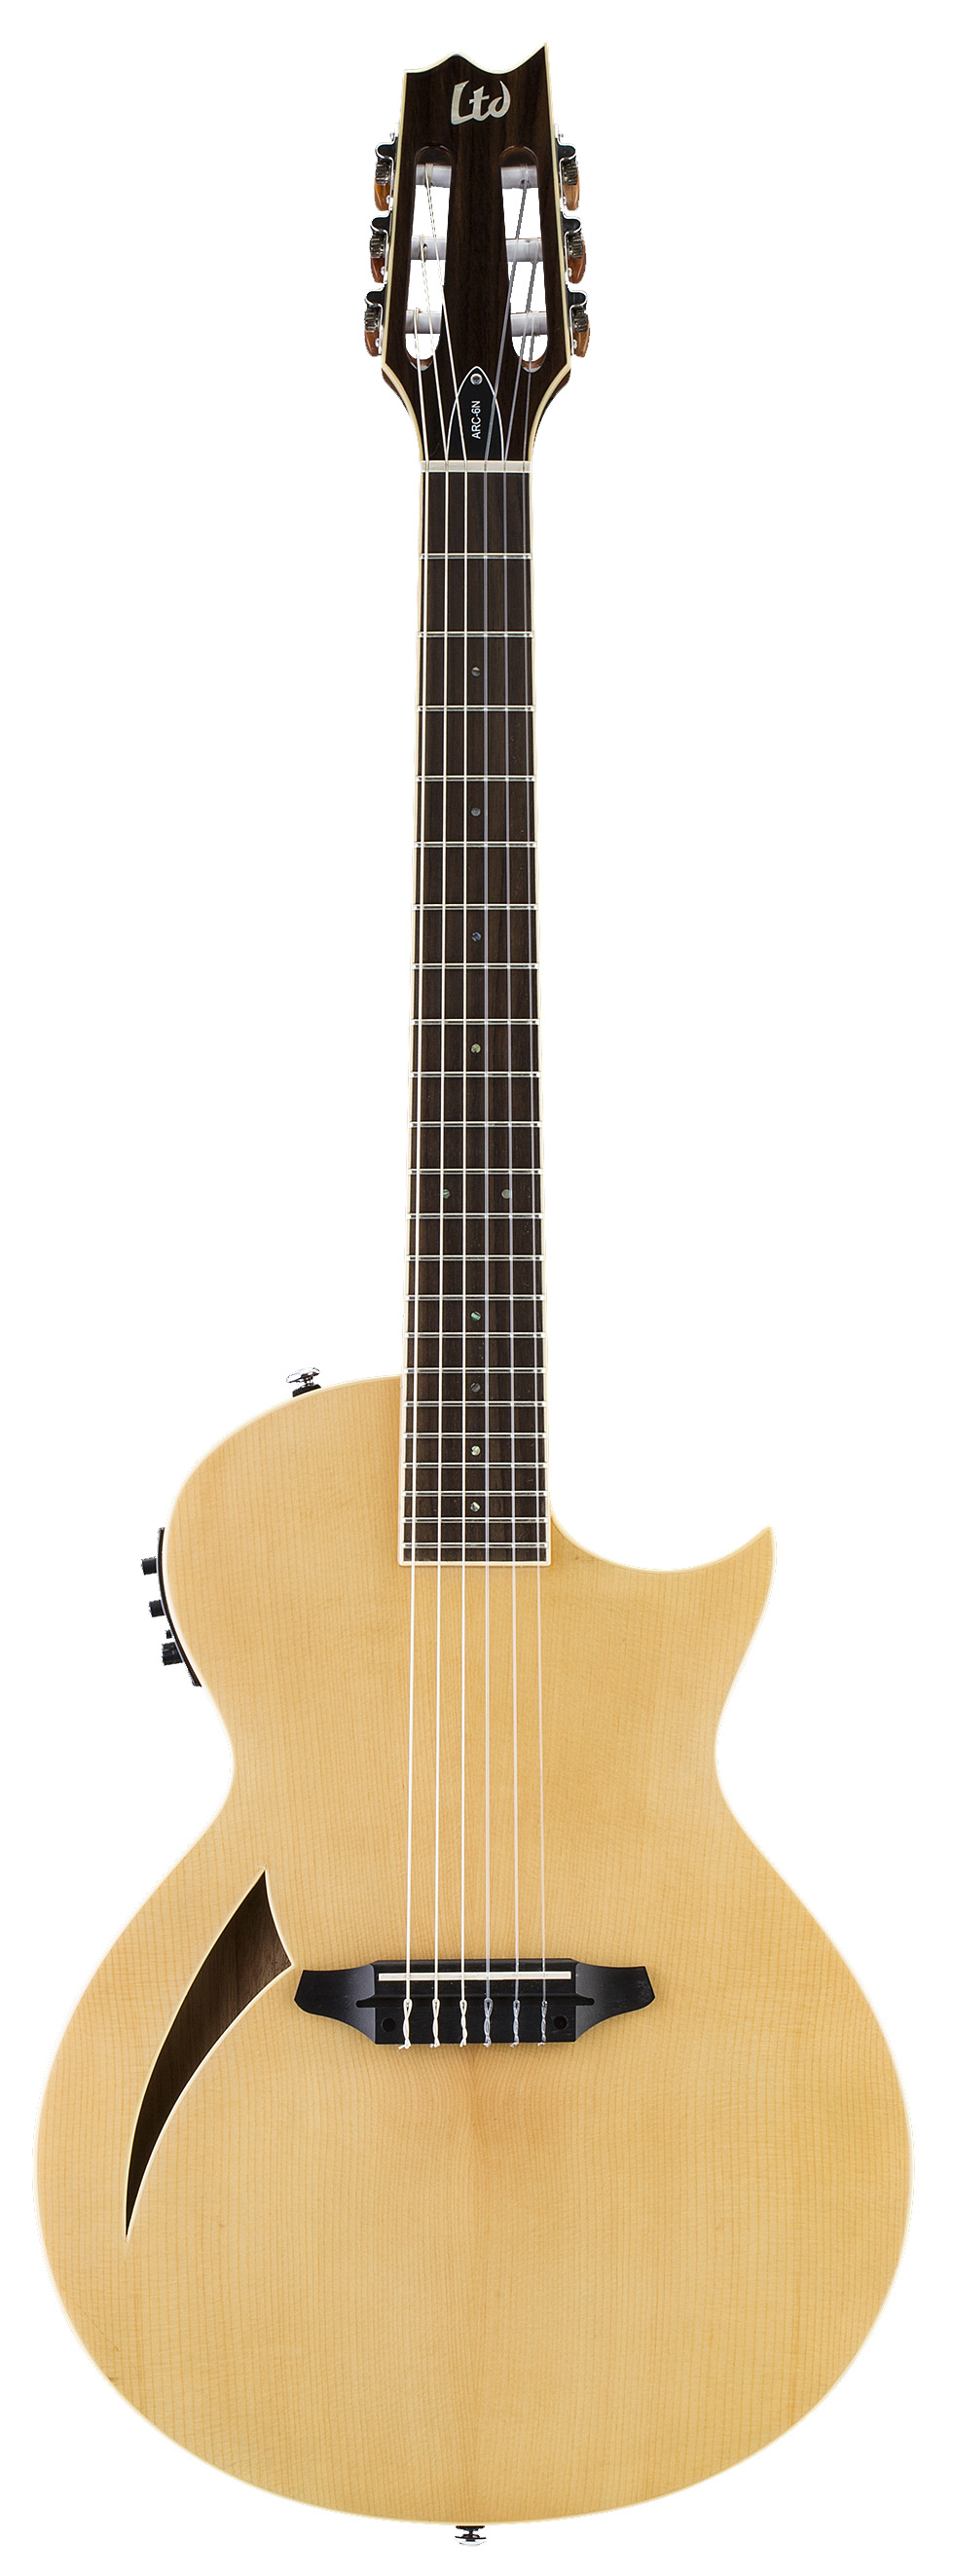 ESP LTD ARC-6N NAT Arc Series Electric Guitar with 22 J Frets & Tuners Natural Finish